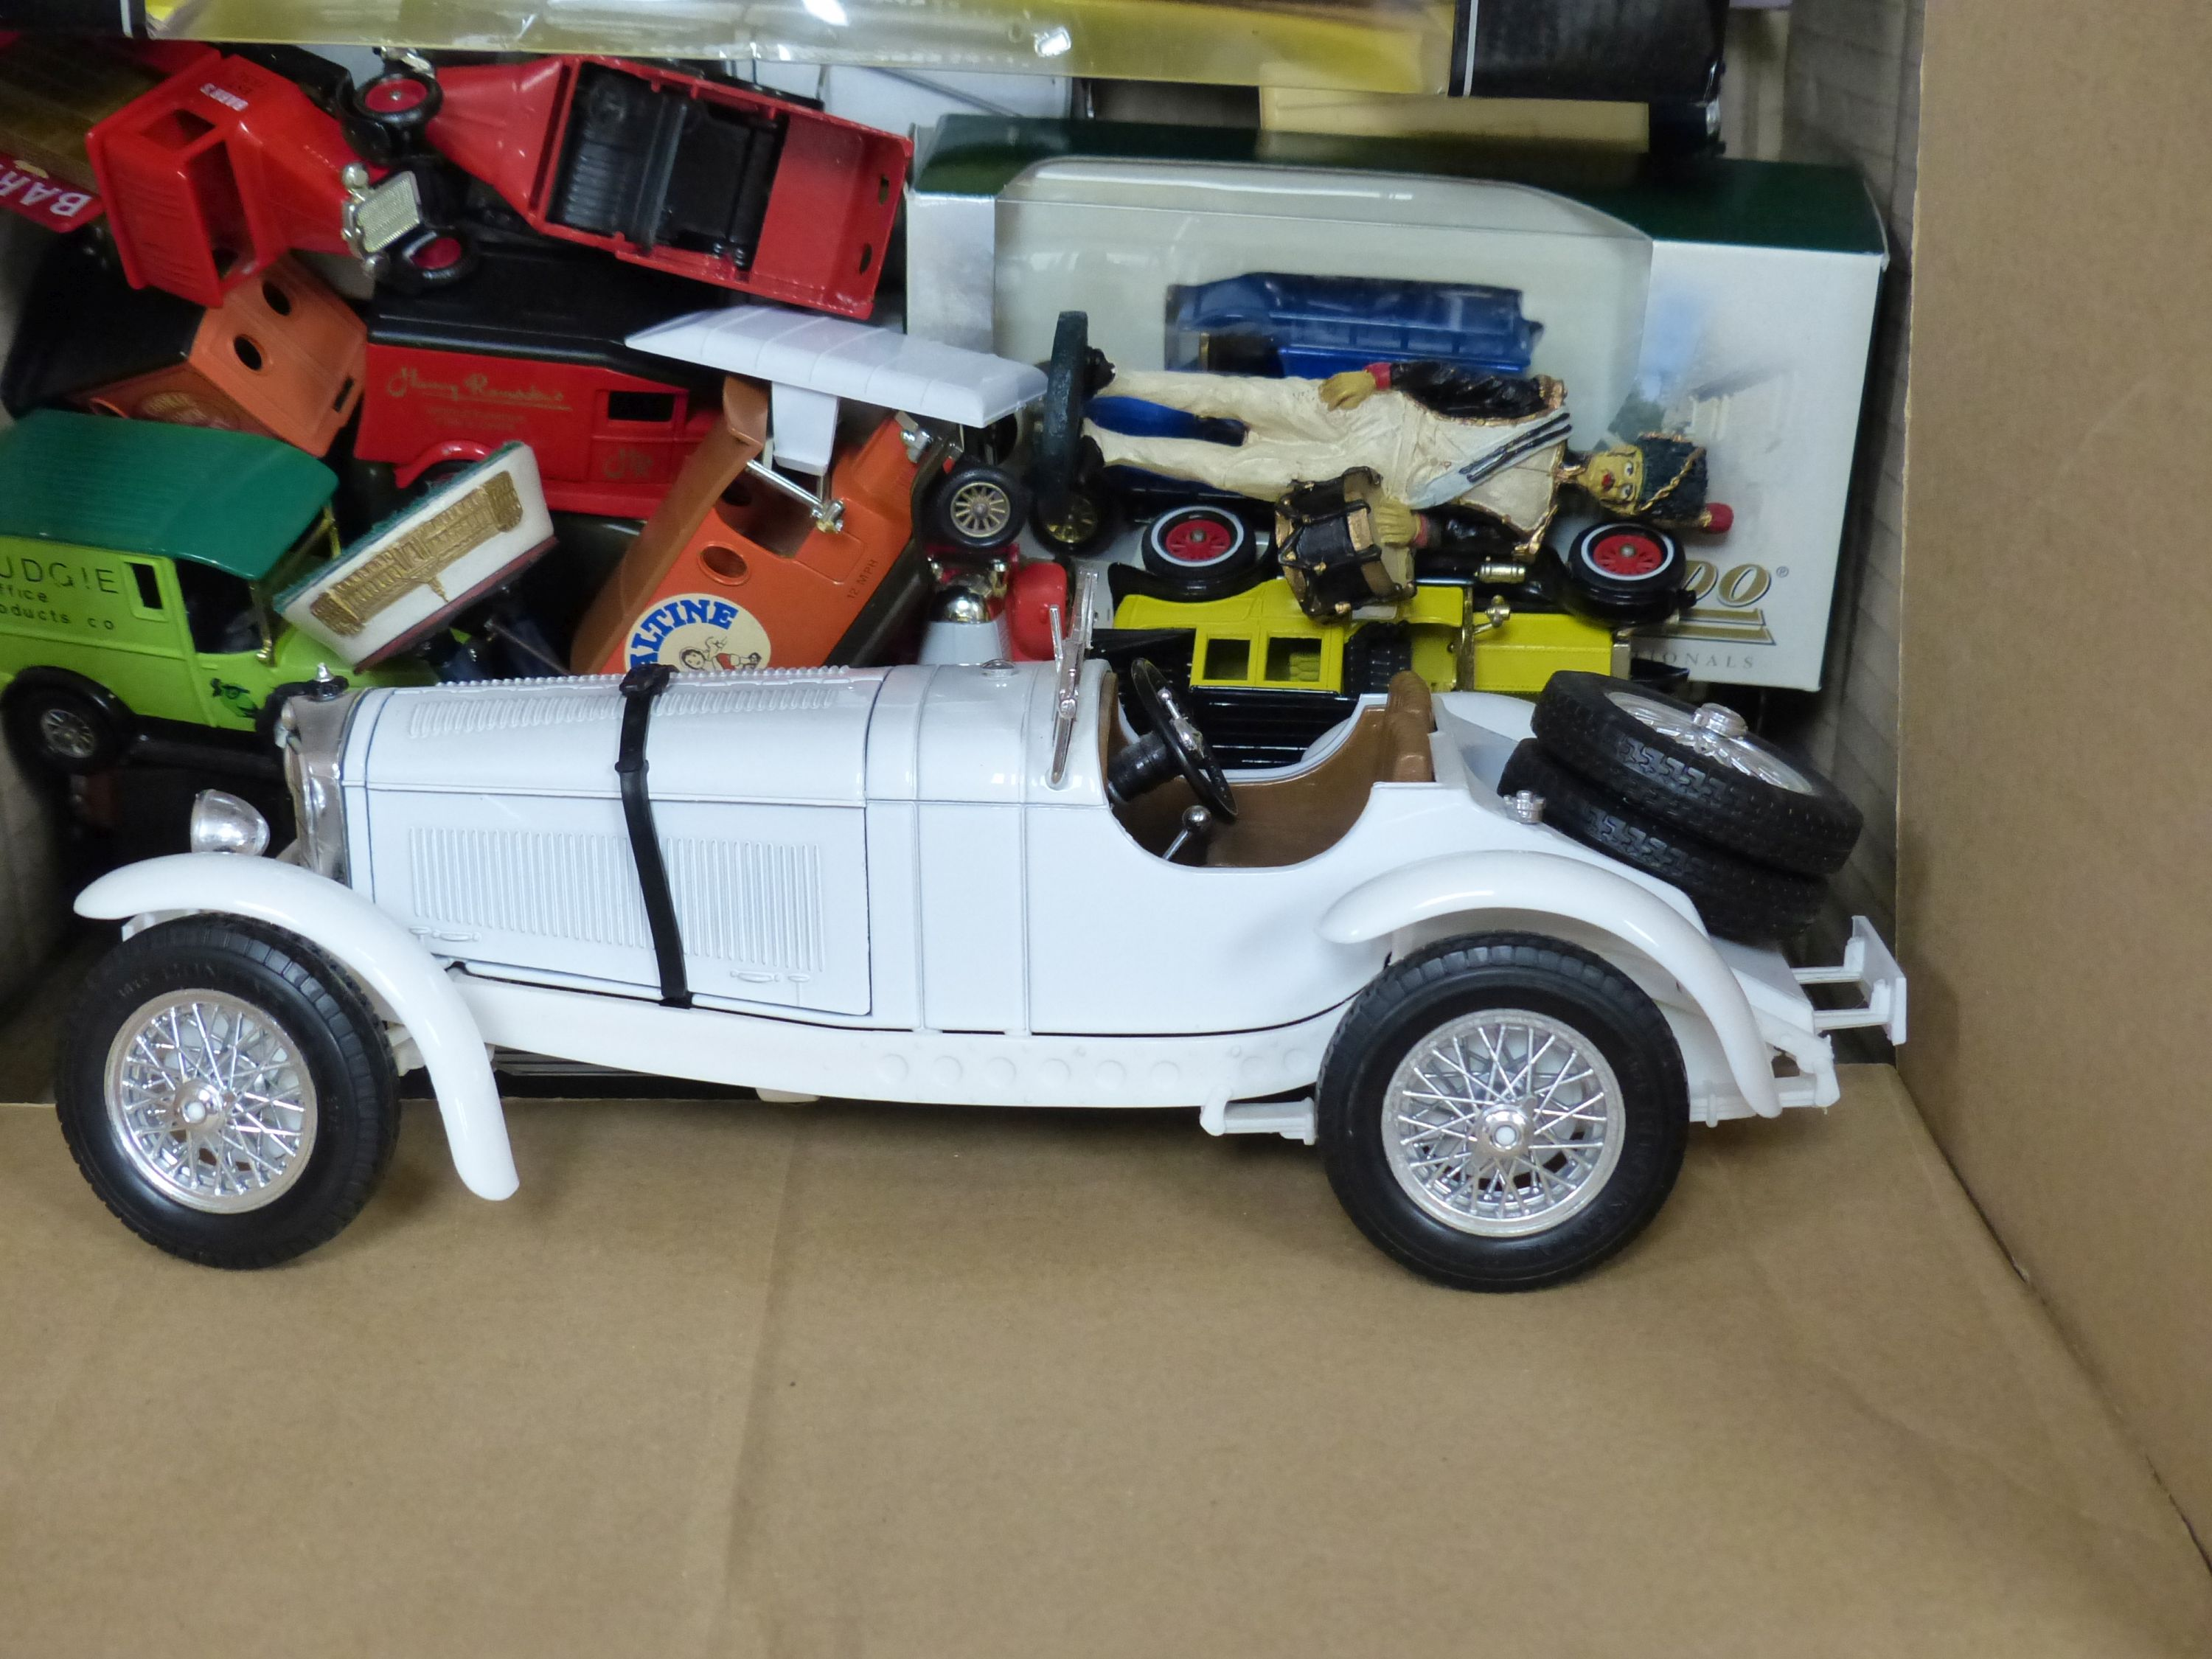 A collection of Matchbox, Dinky and other model cars and other toys - Image 4 of 6